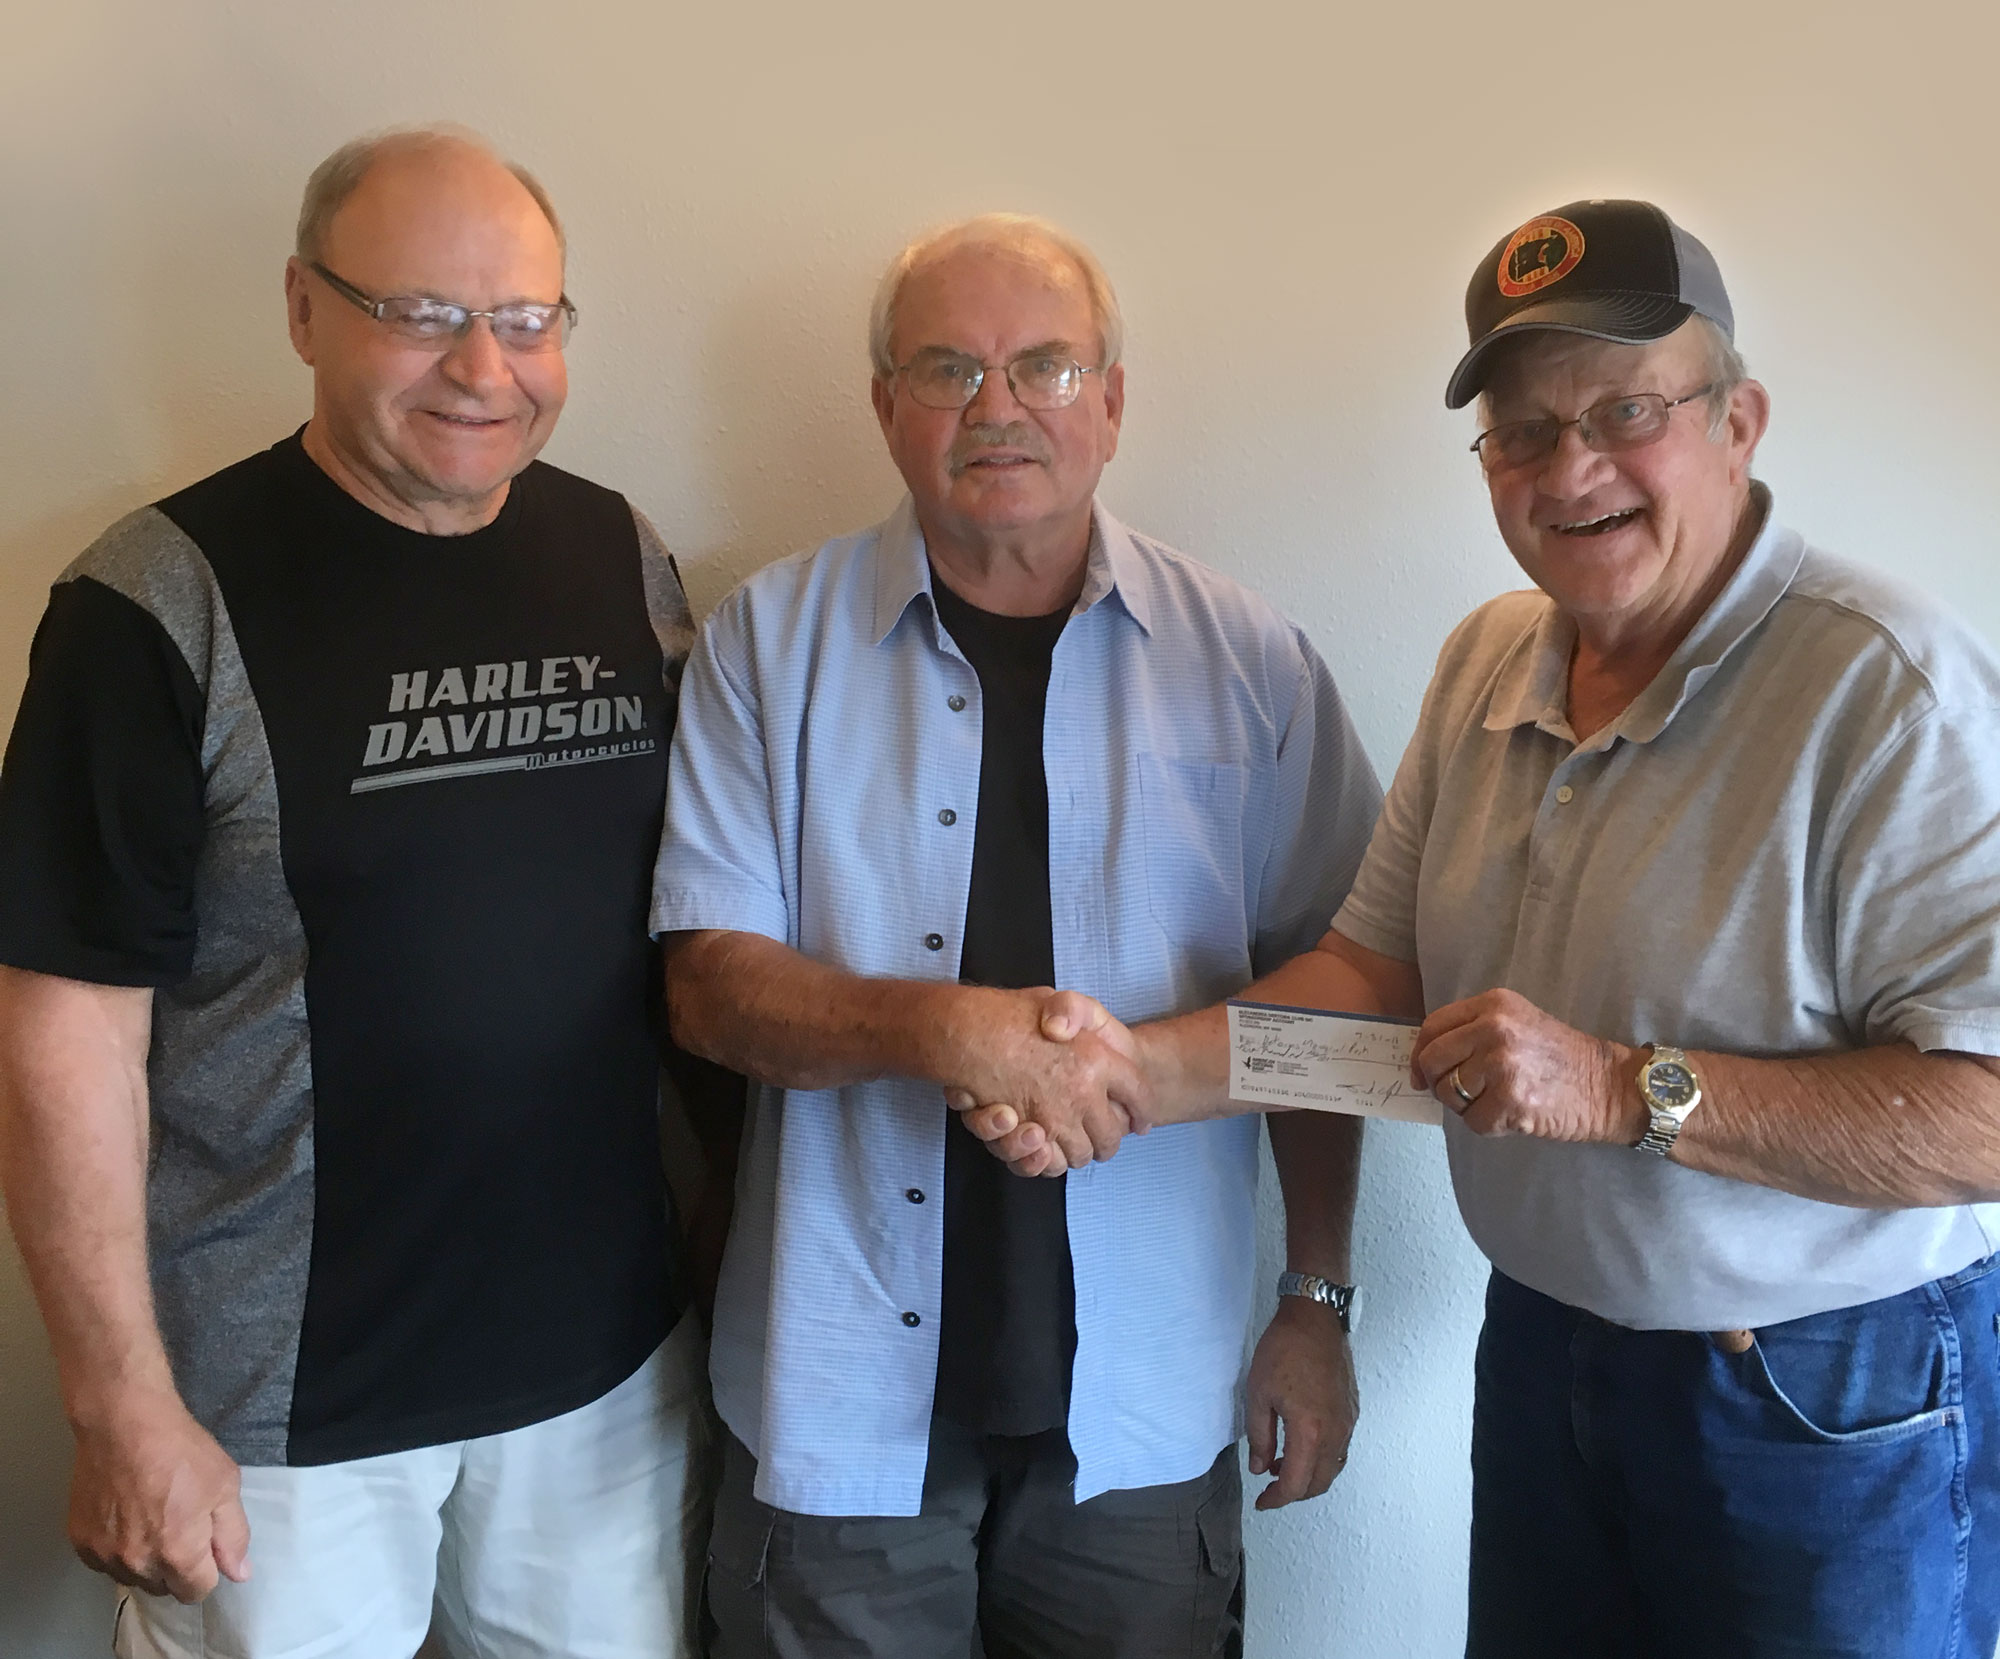 Don Johnson (center) presents a $5,000 check from the Sertoma Club on July 26, 2018 to Grant Haugen (left) and Gabe Pipo (right) accepting on behalf of the Veterans Memorial Park Finance Committee.